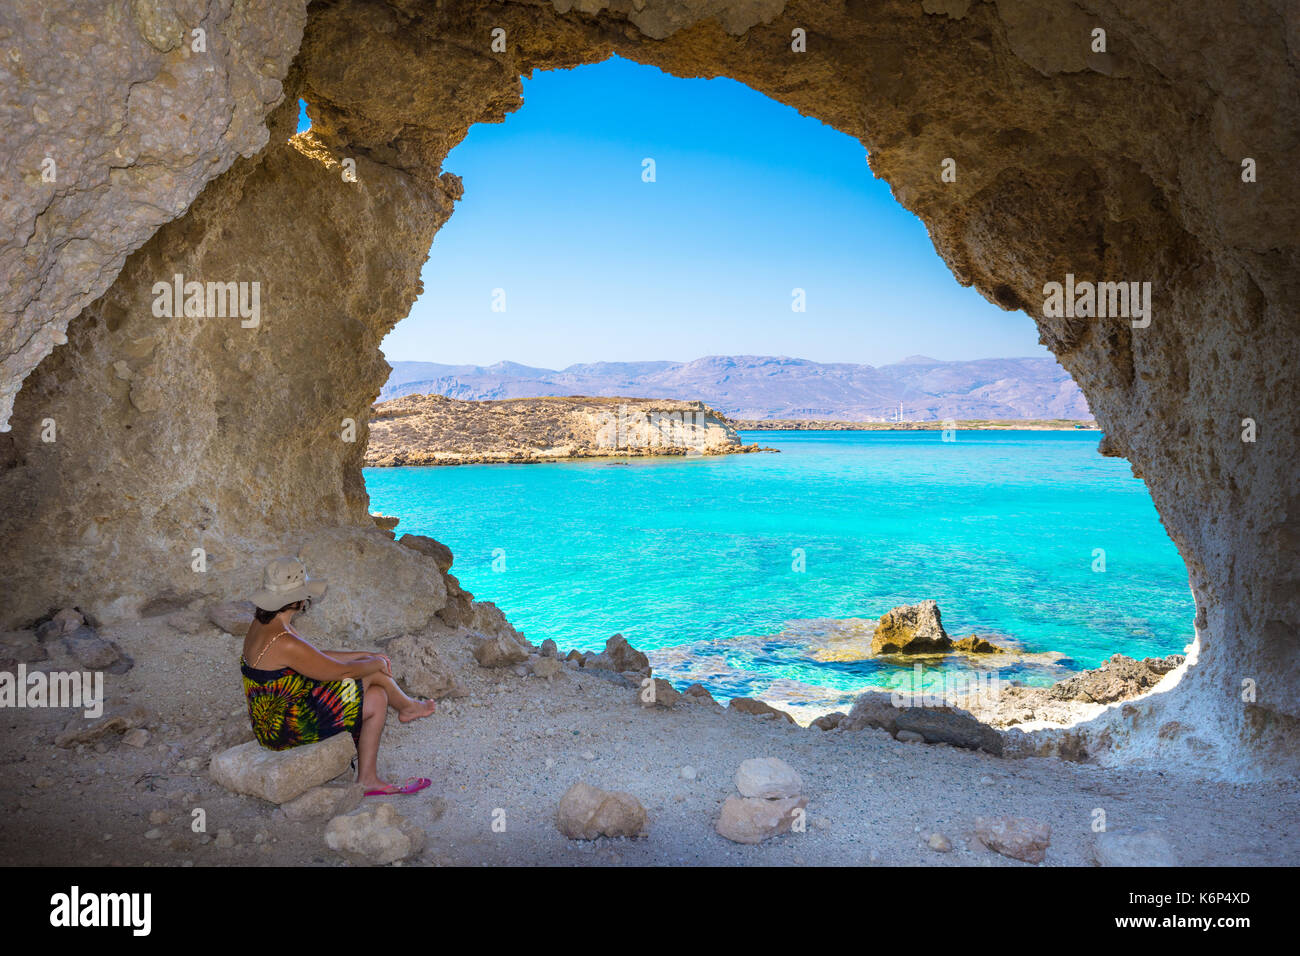 Amazing summer view of woman in a cave at Koufonisi island with magical turquoise waters, lagoons, tropical beaches of pure white sand. - Stock Image